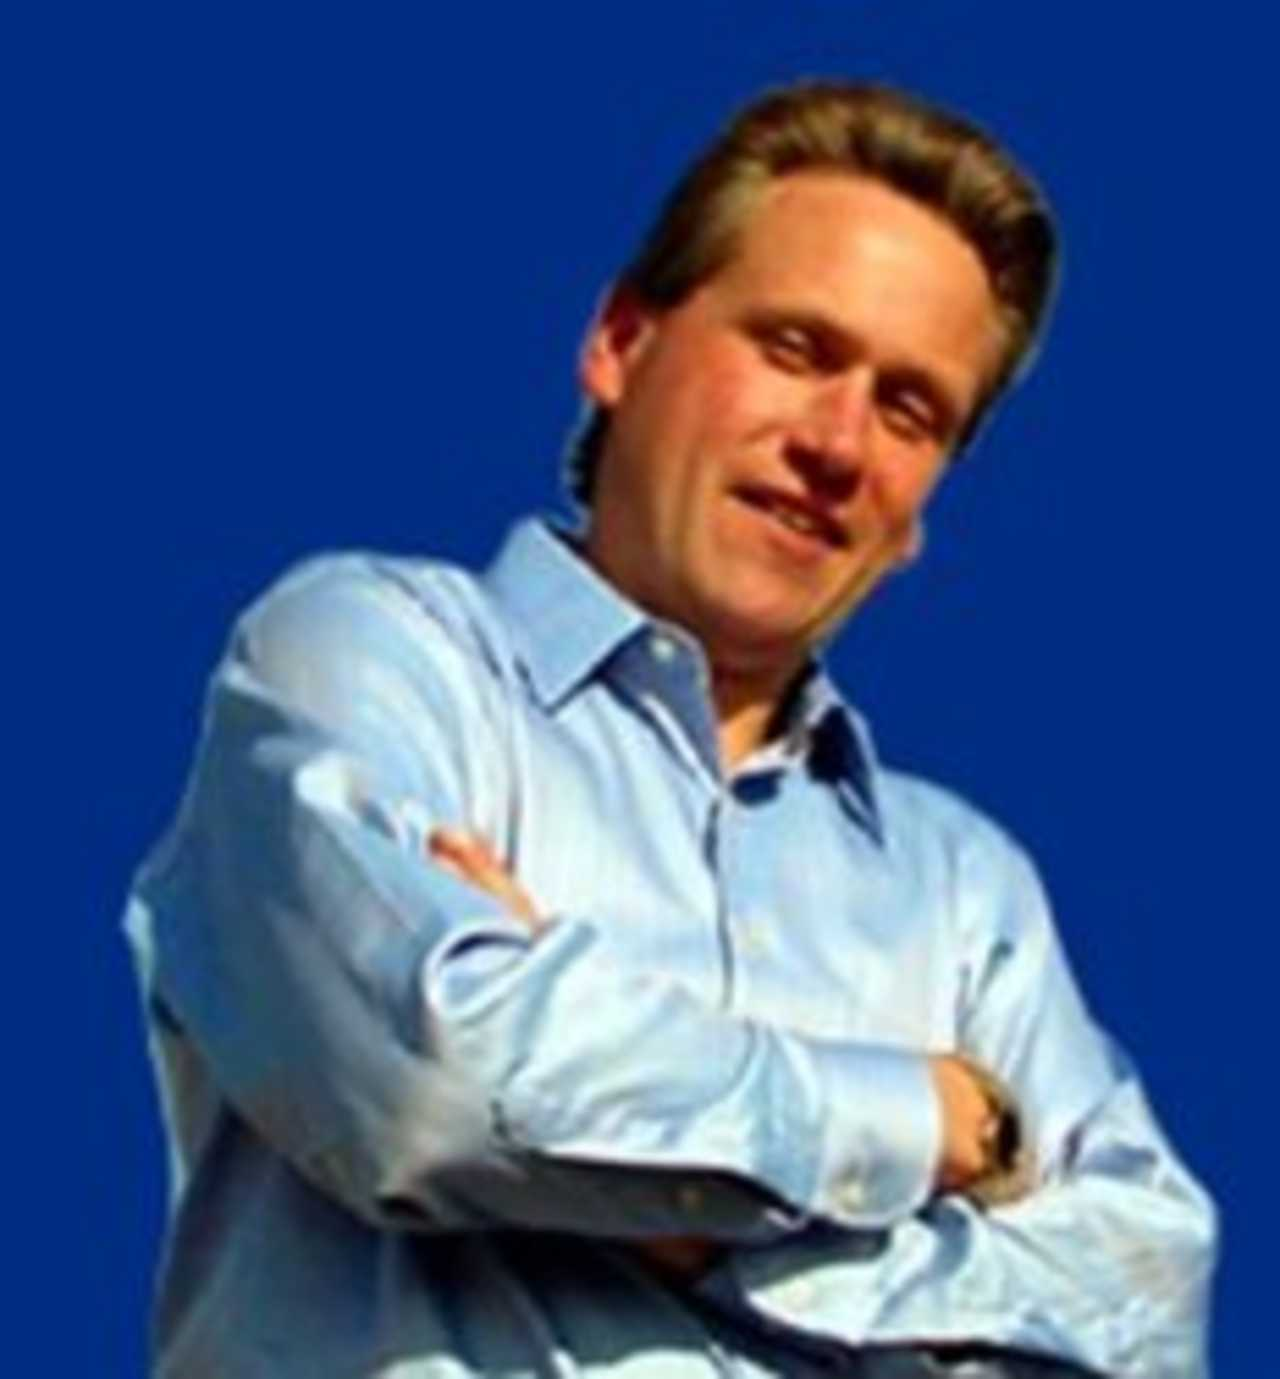 Coldwell Banker - Lee Hansen - Real Estate - Real Estate Agents in New Lenox IL